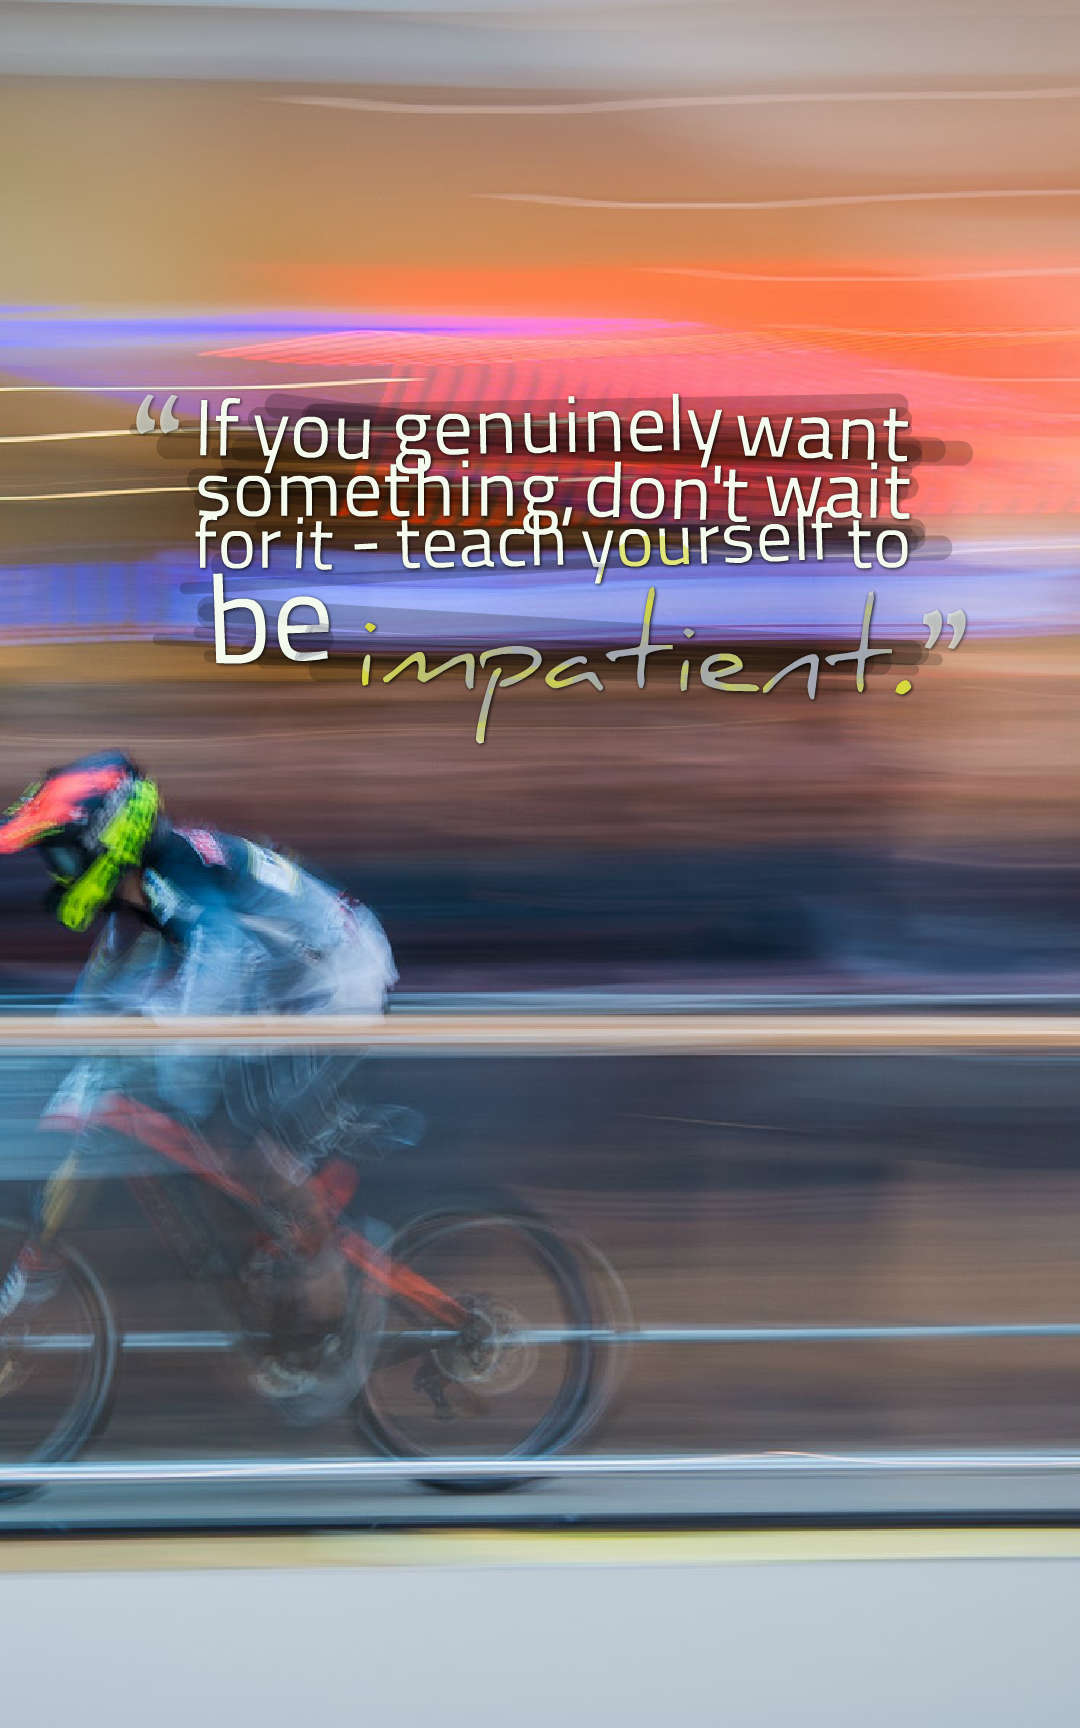 Quotes image of If you genuinely want something, don't wait for it - teach yourself to be impatient.